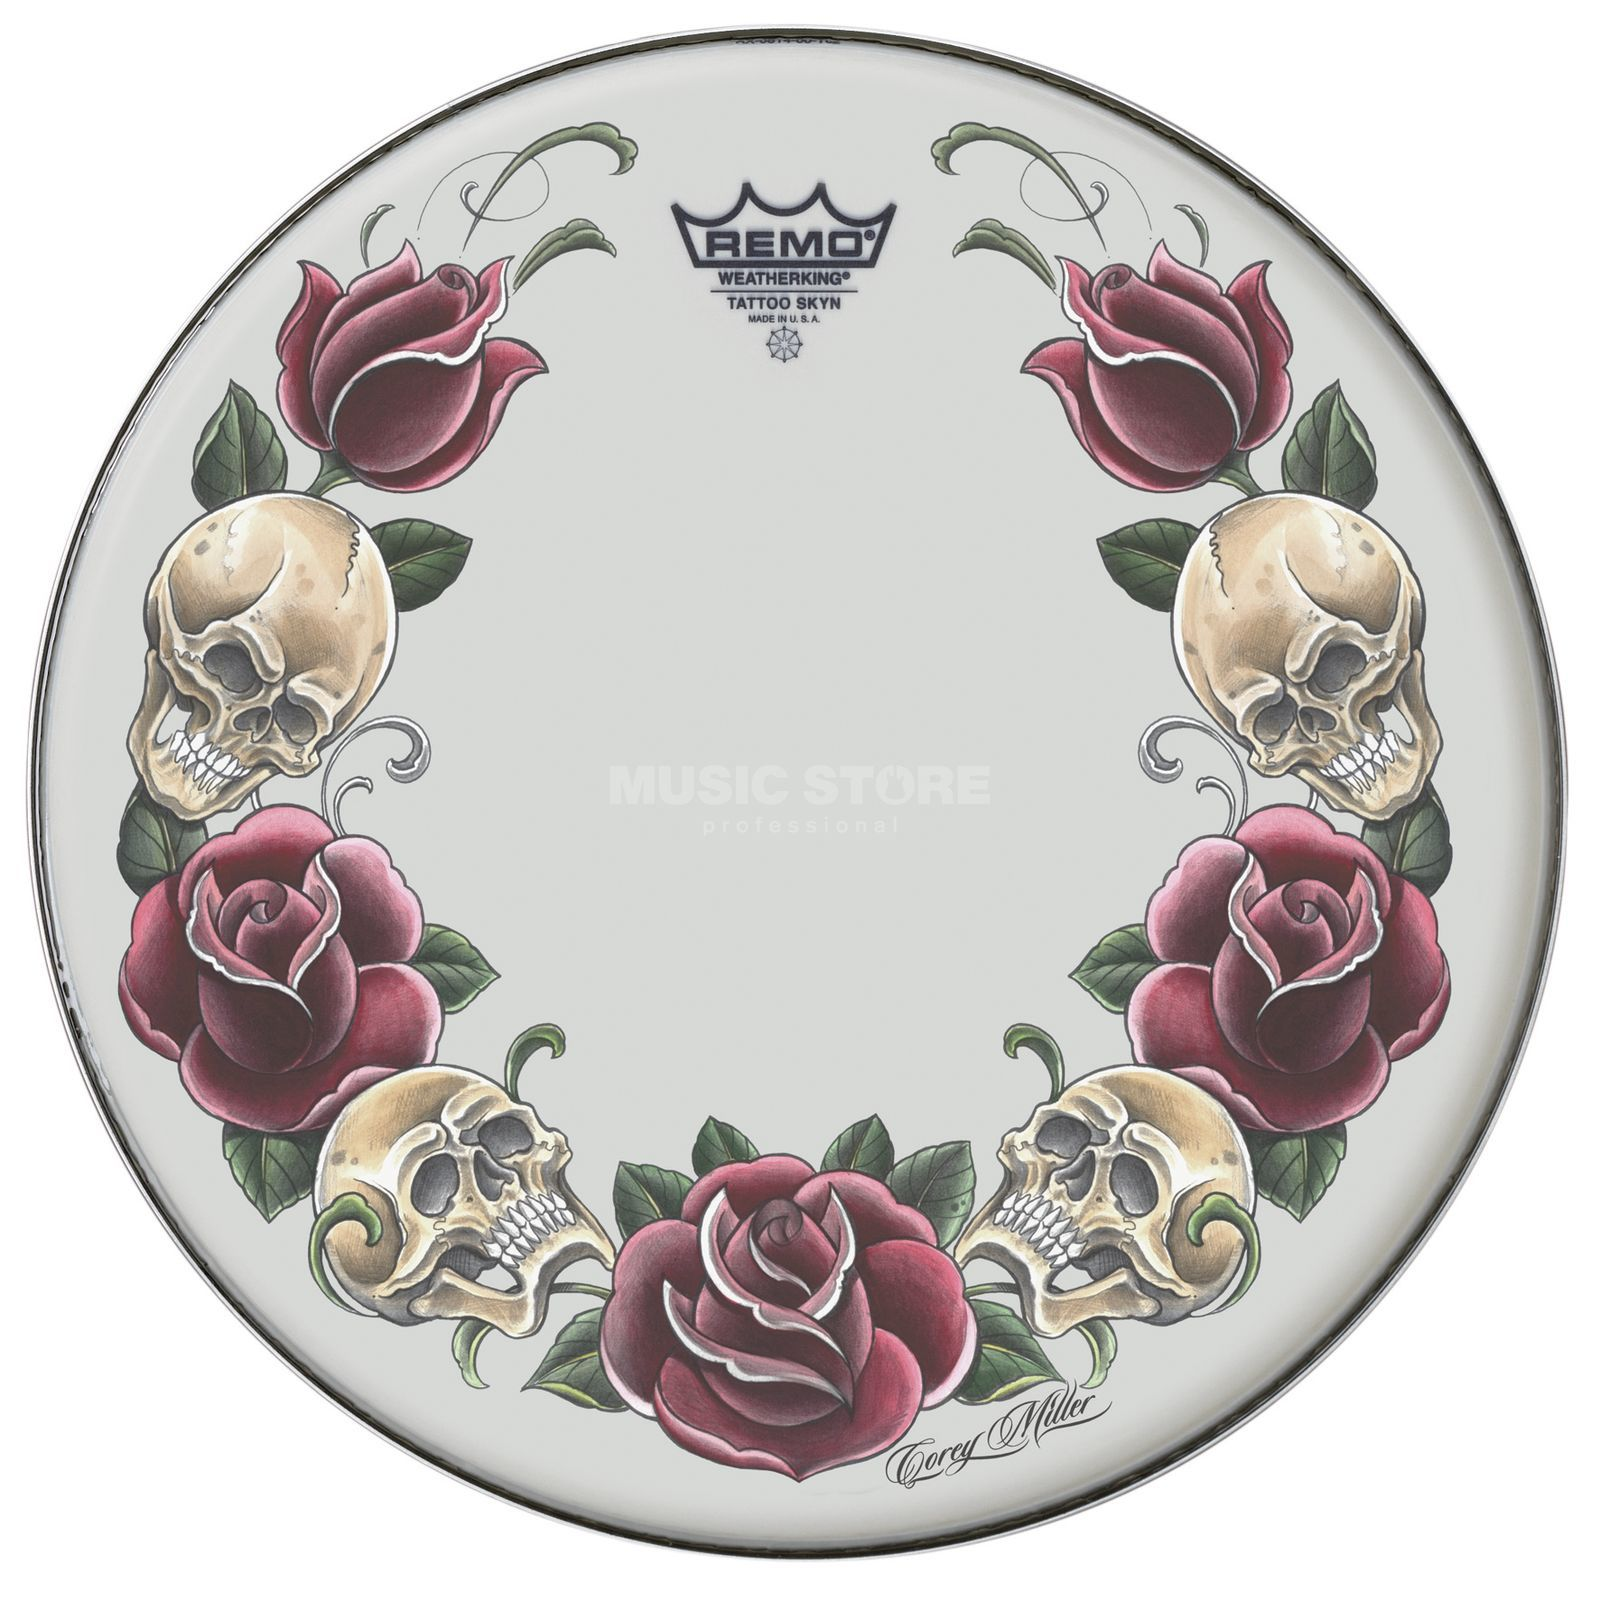 "Remo Tattoo Skyn 14"", Rock and Roses Product Image"